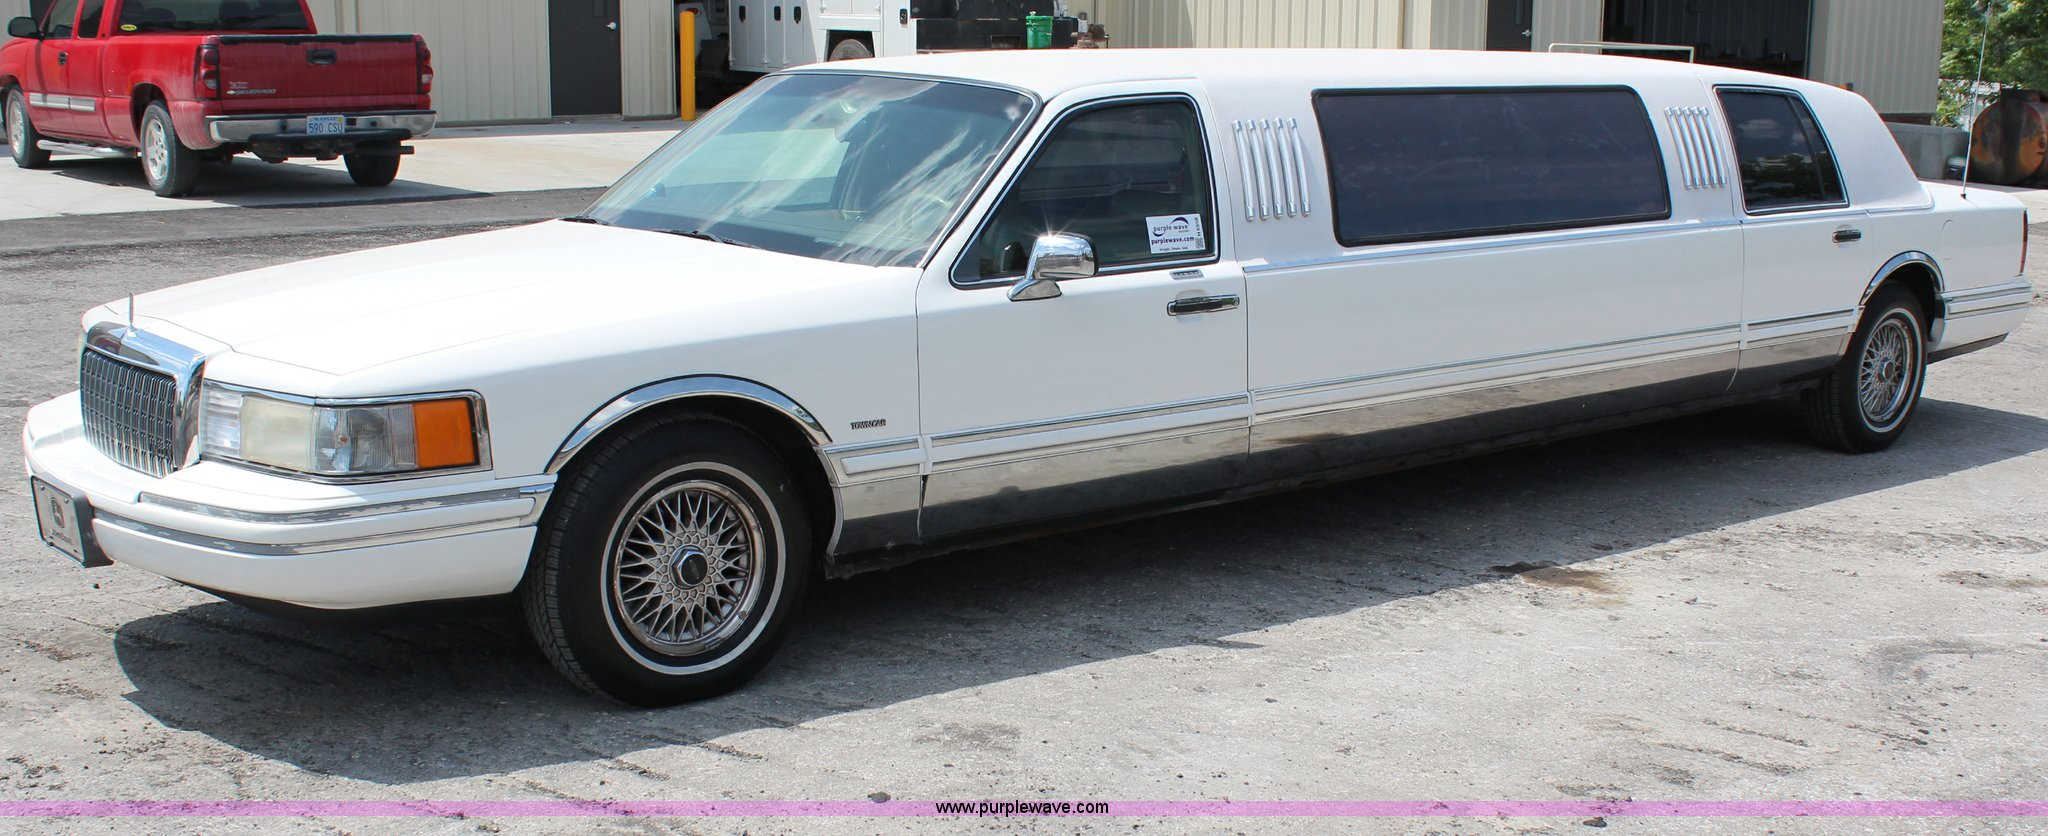 1994 Lincoln Town Car Executive Limousine Item H6556 Sol Image For